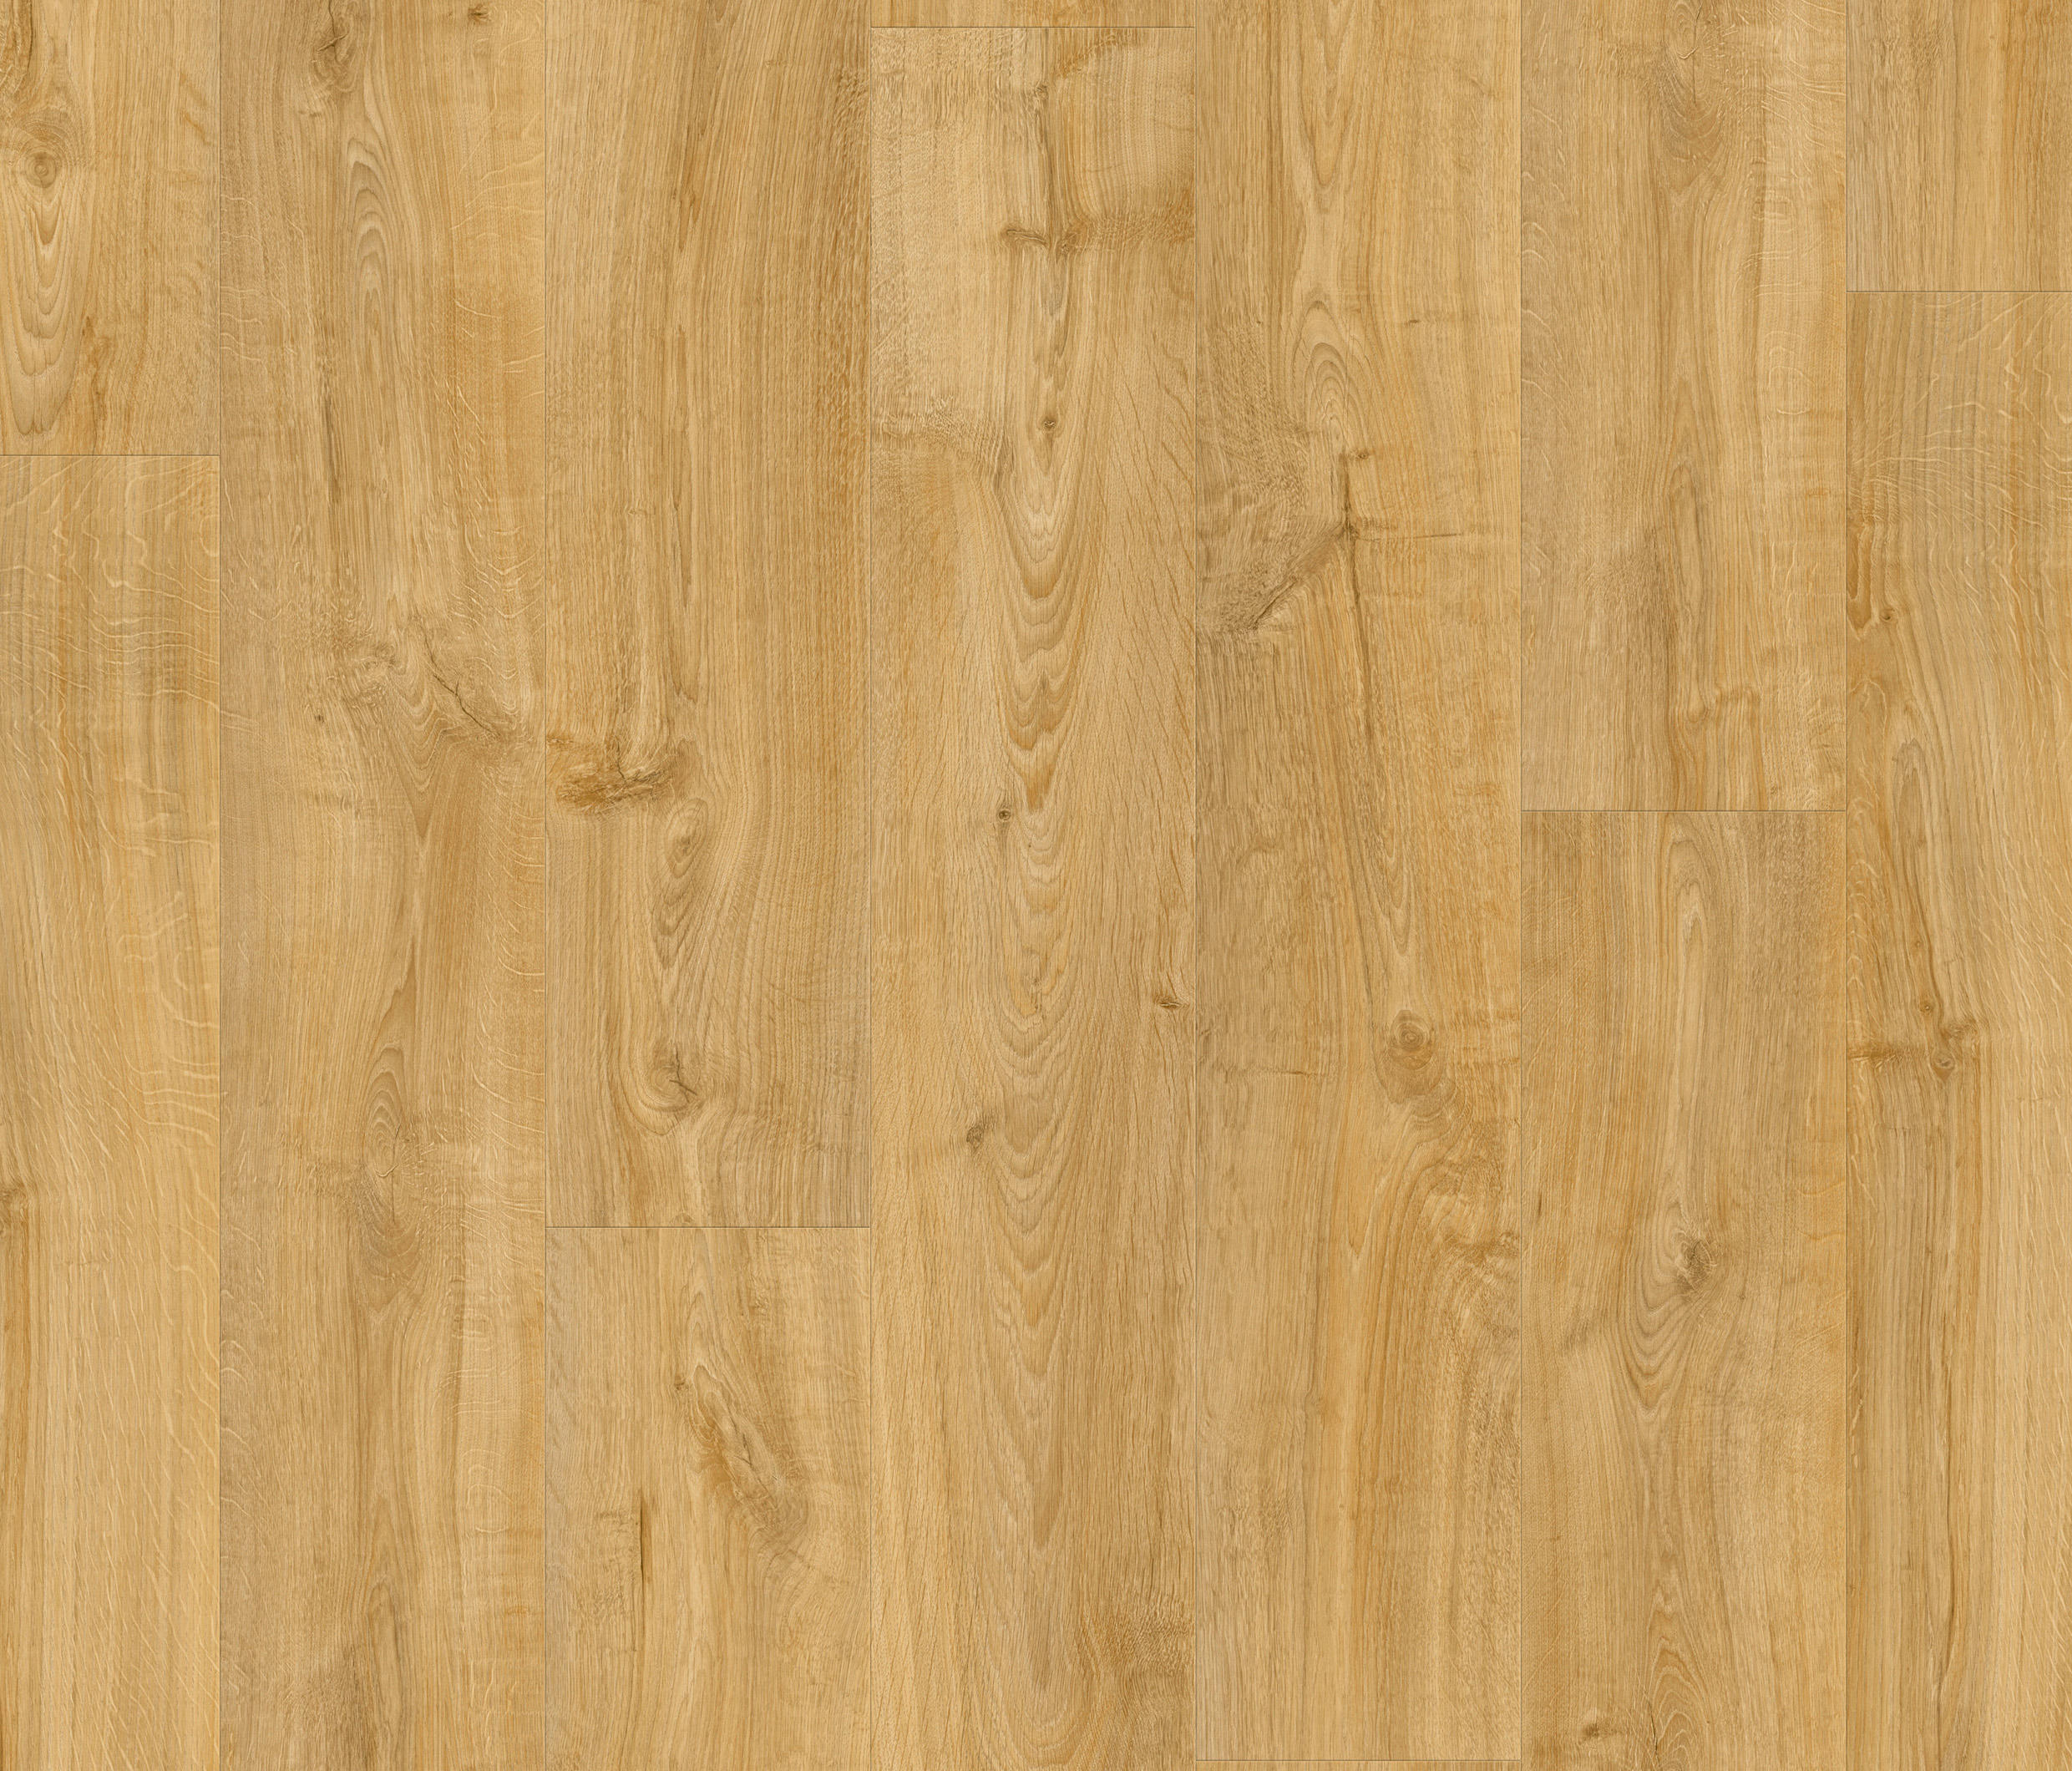 Modern Plank Vinyl Natural Village Oak By Pergo Laminate Flooring